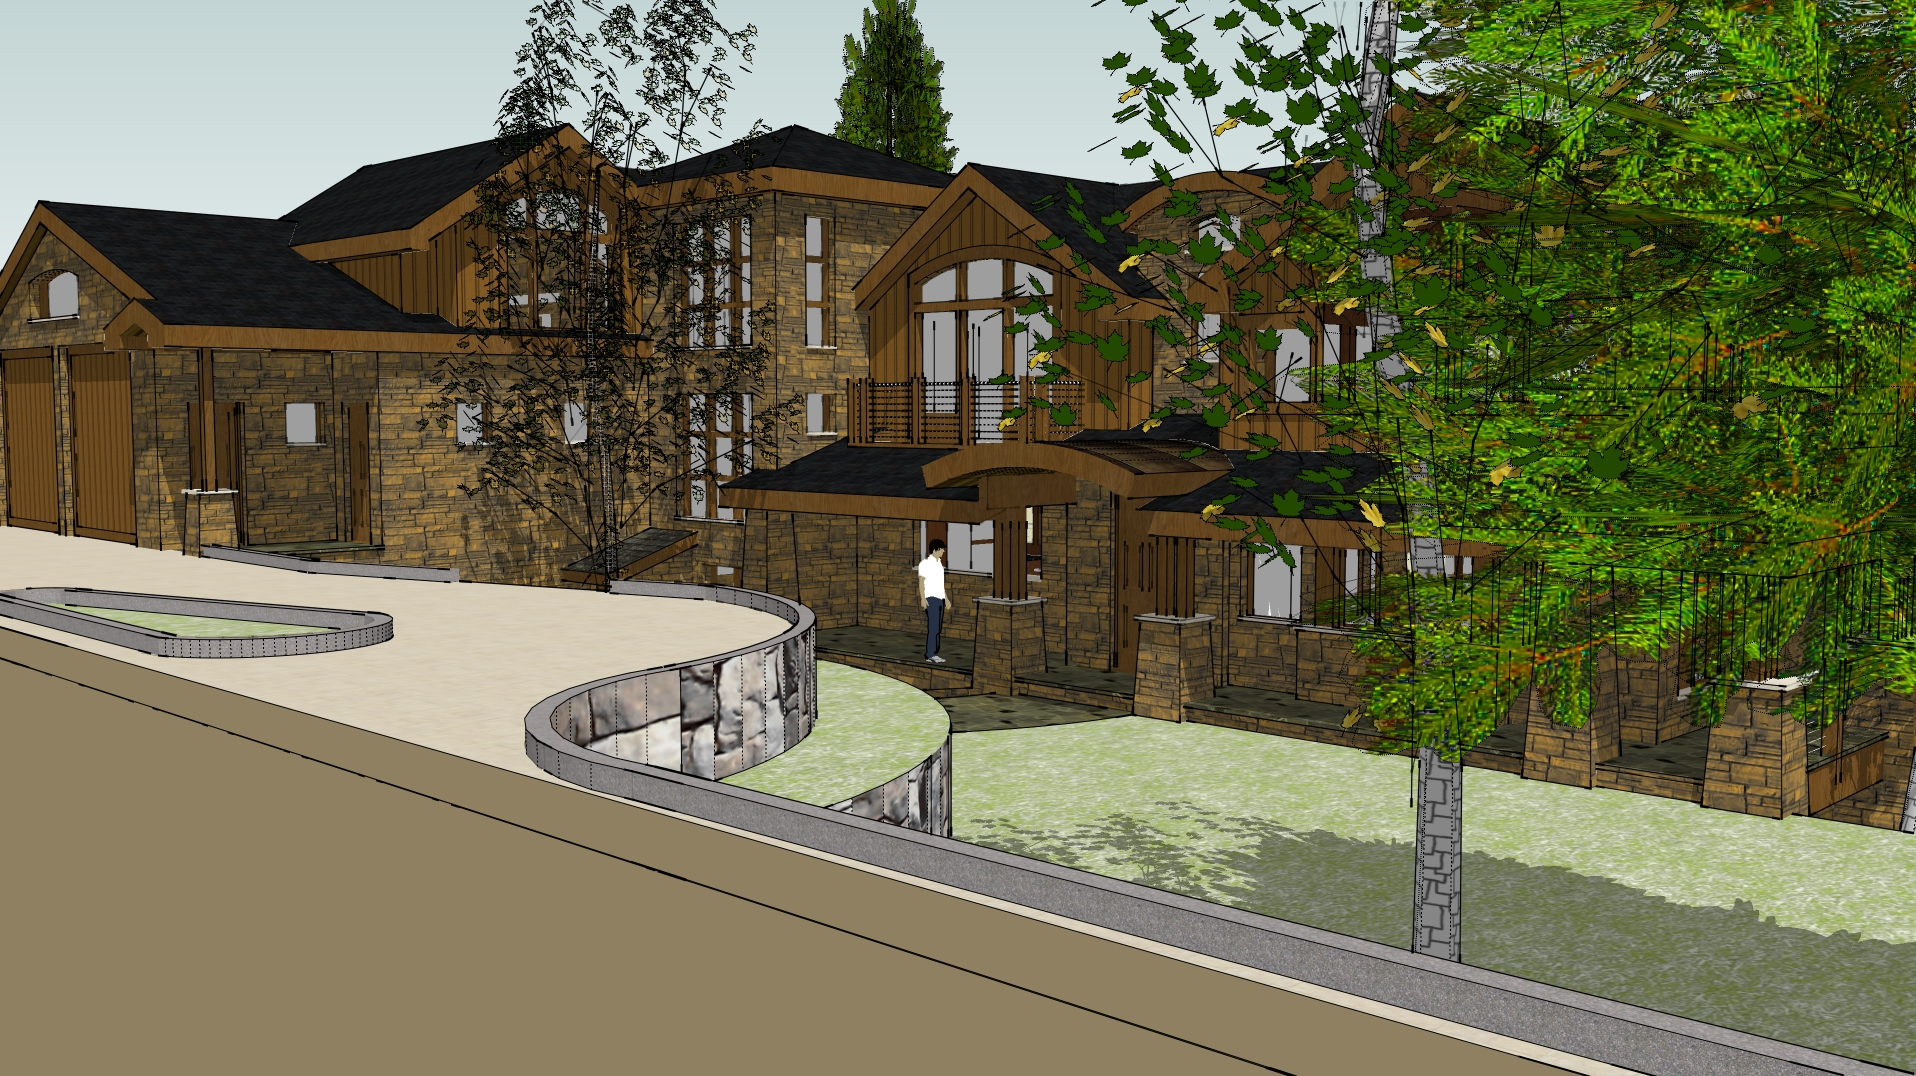 WEST FOREST ROAD VAIL CONCEPT